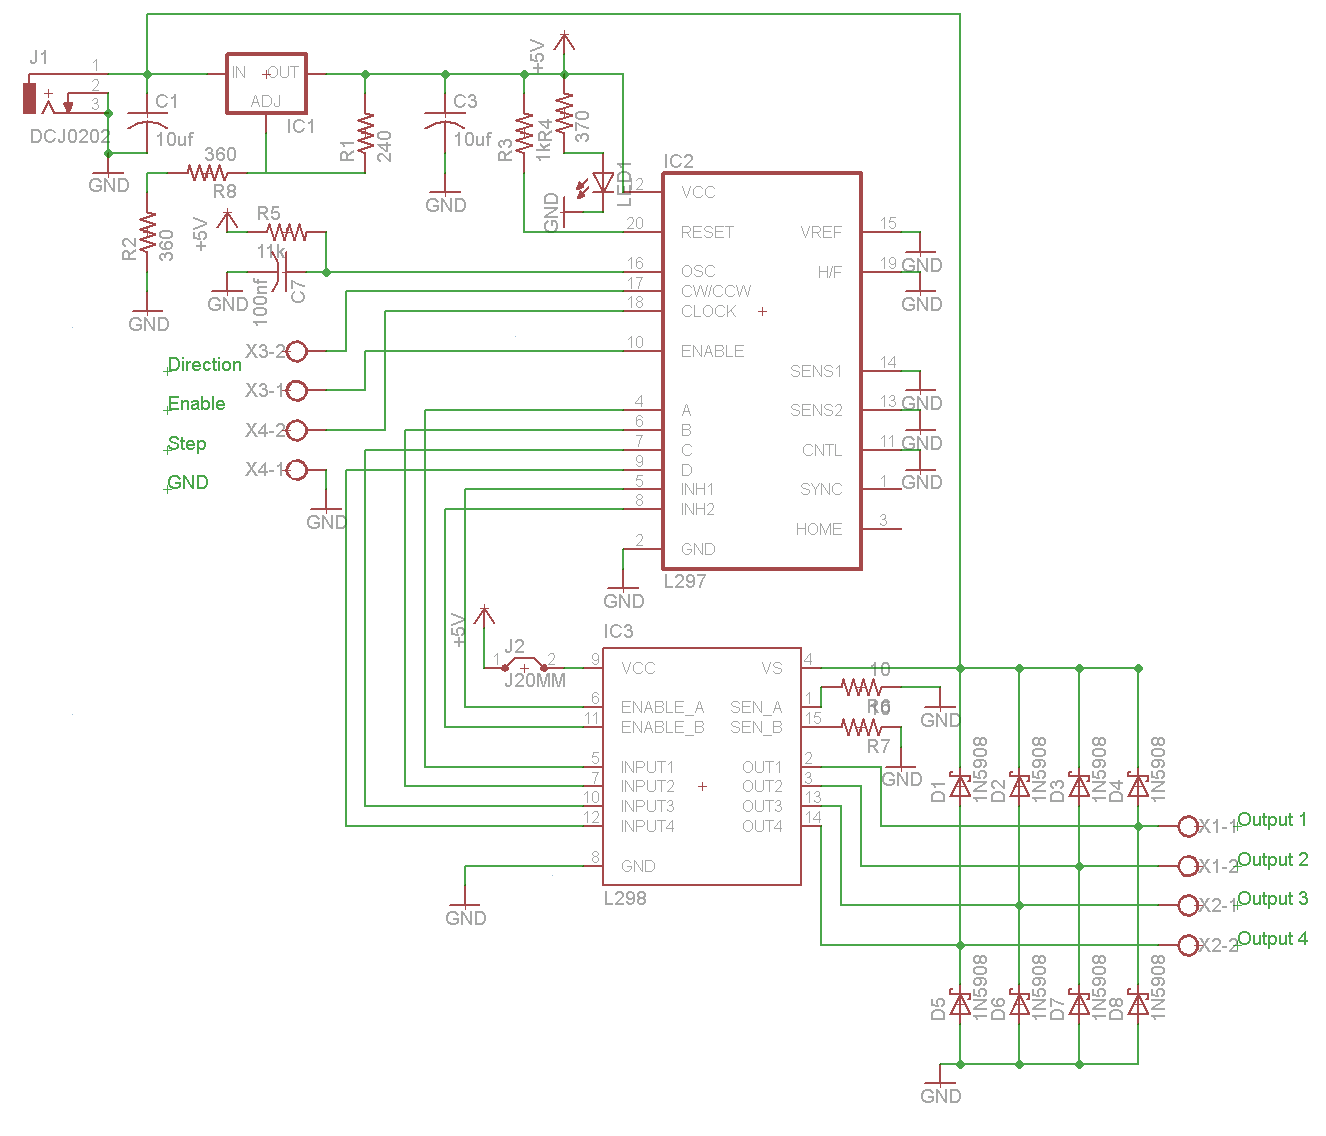 diy stepper controller schematic pyroelectro news, projectsdiy stepper controller